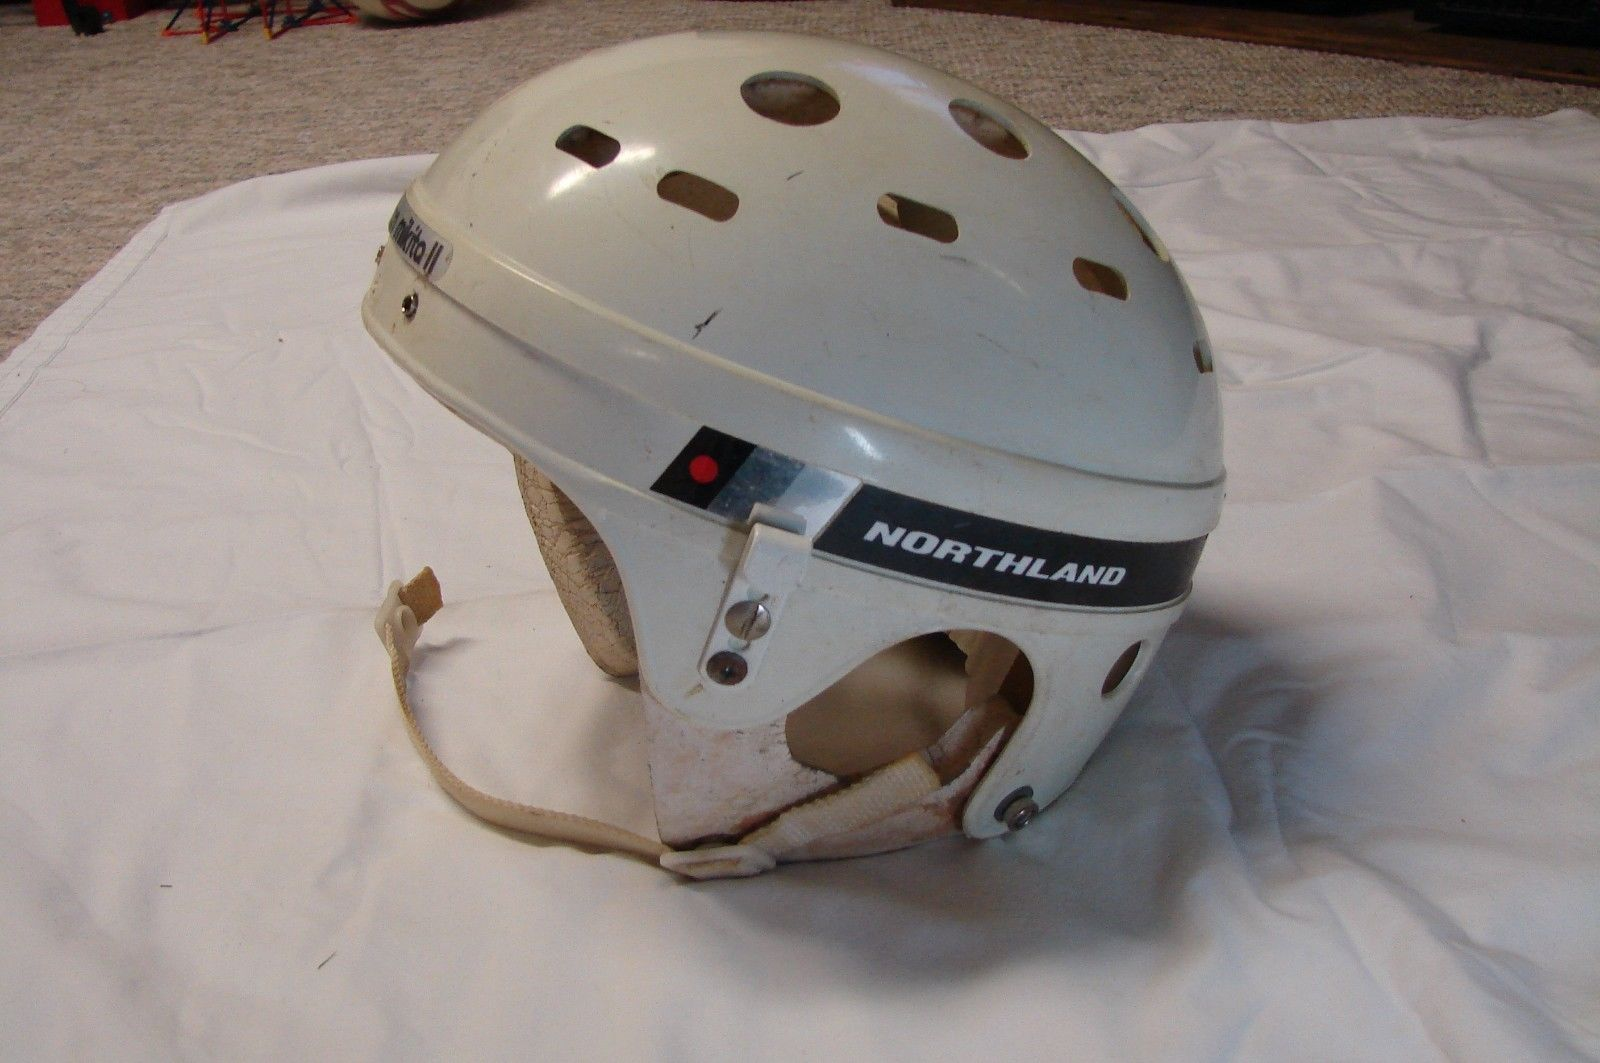 Still Got This One Somewhere In The Attic With The Typical Bended Nose Cage On It The Northland Stan Mikita Hockey Helm Hockey Helmet Hockey Helmets Hockey